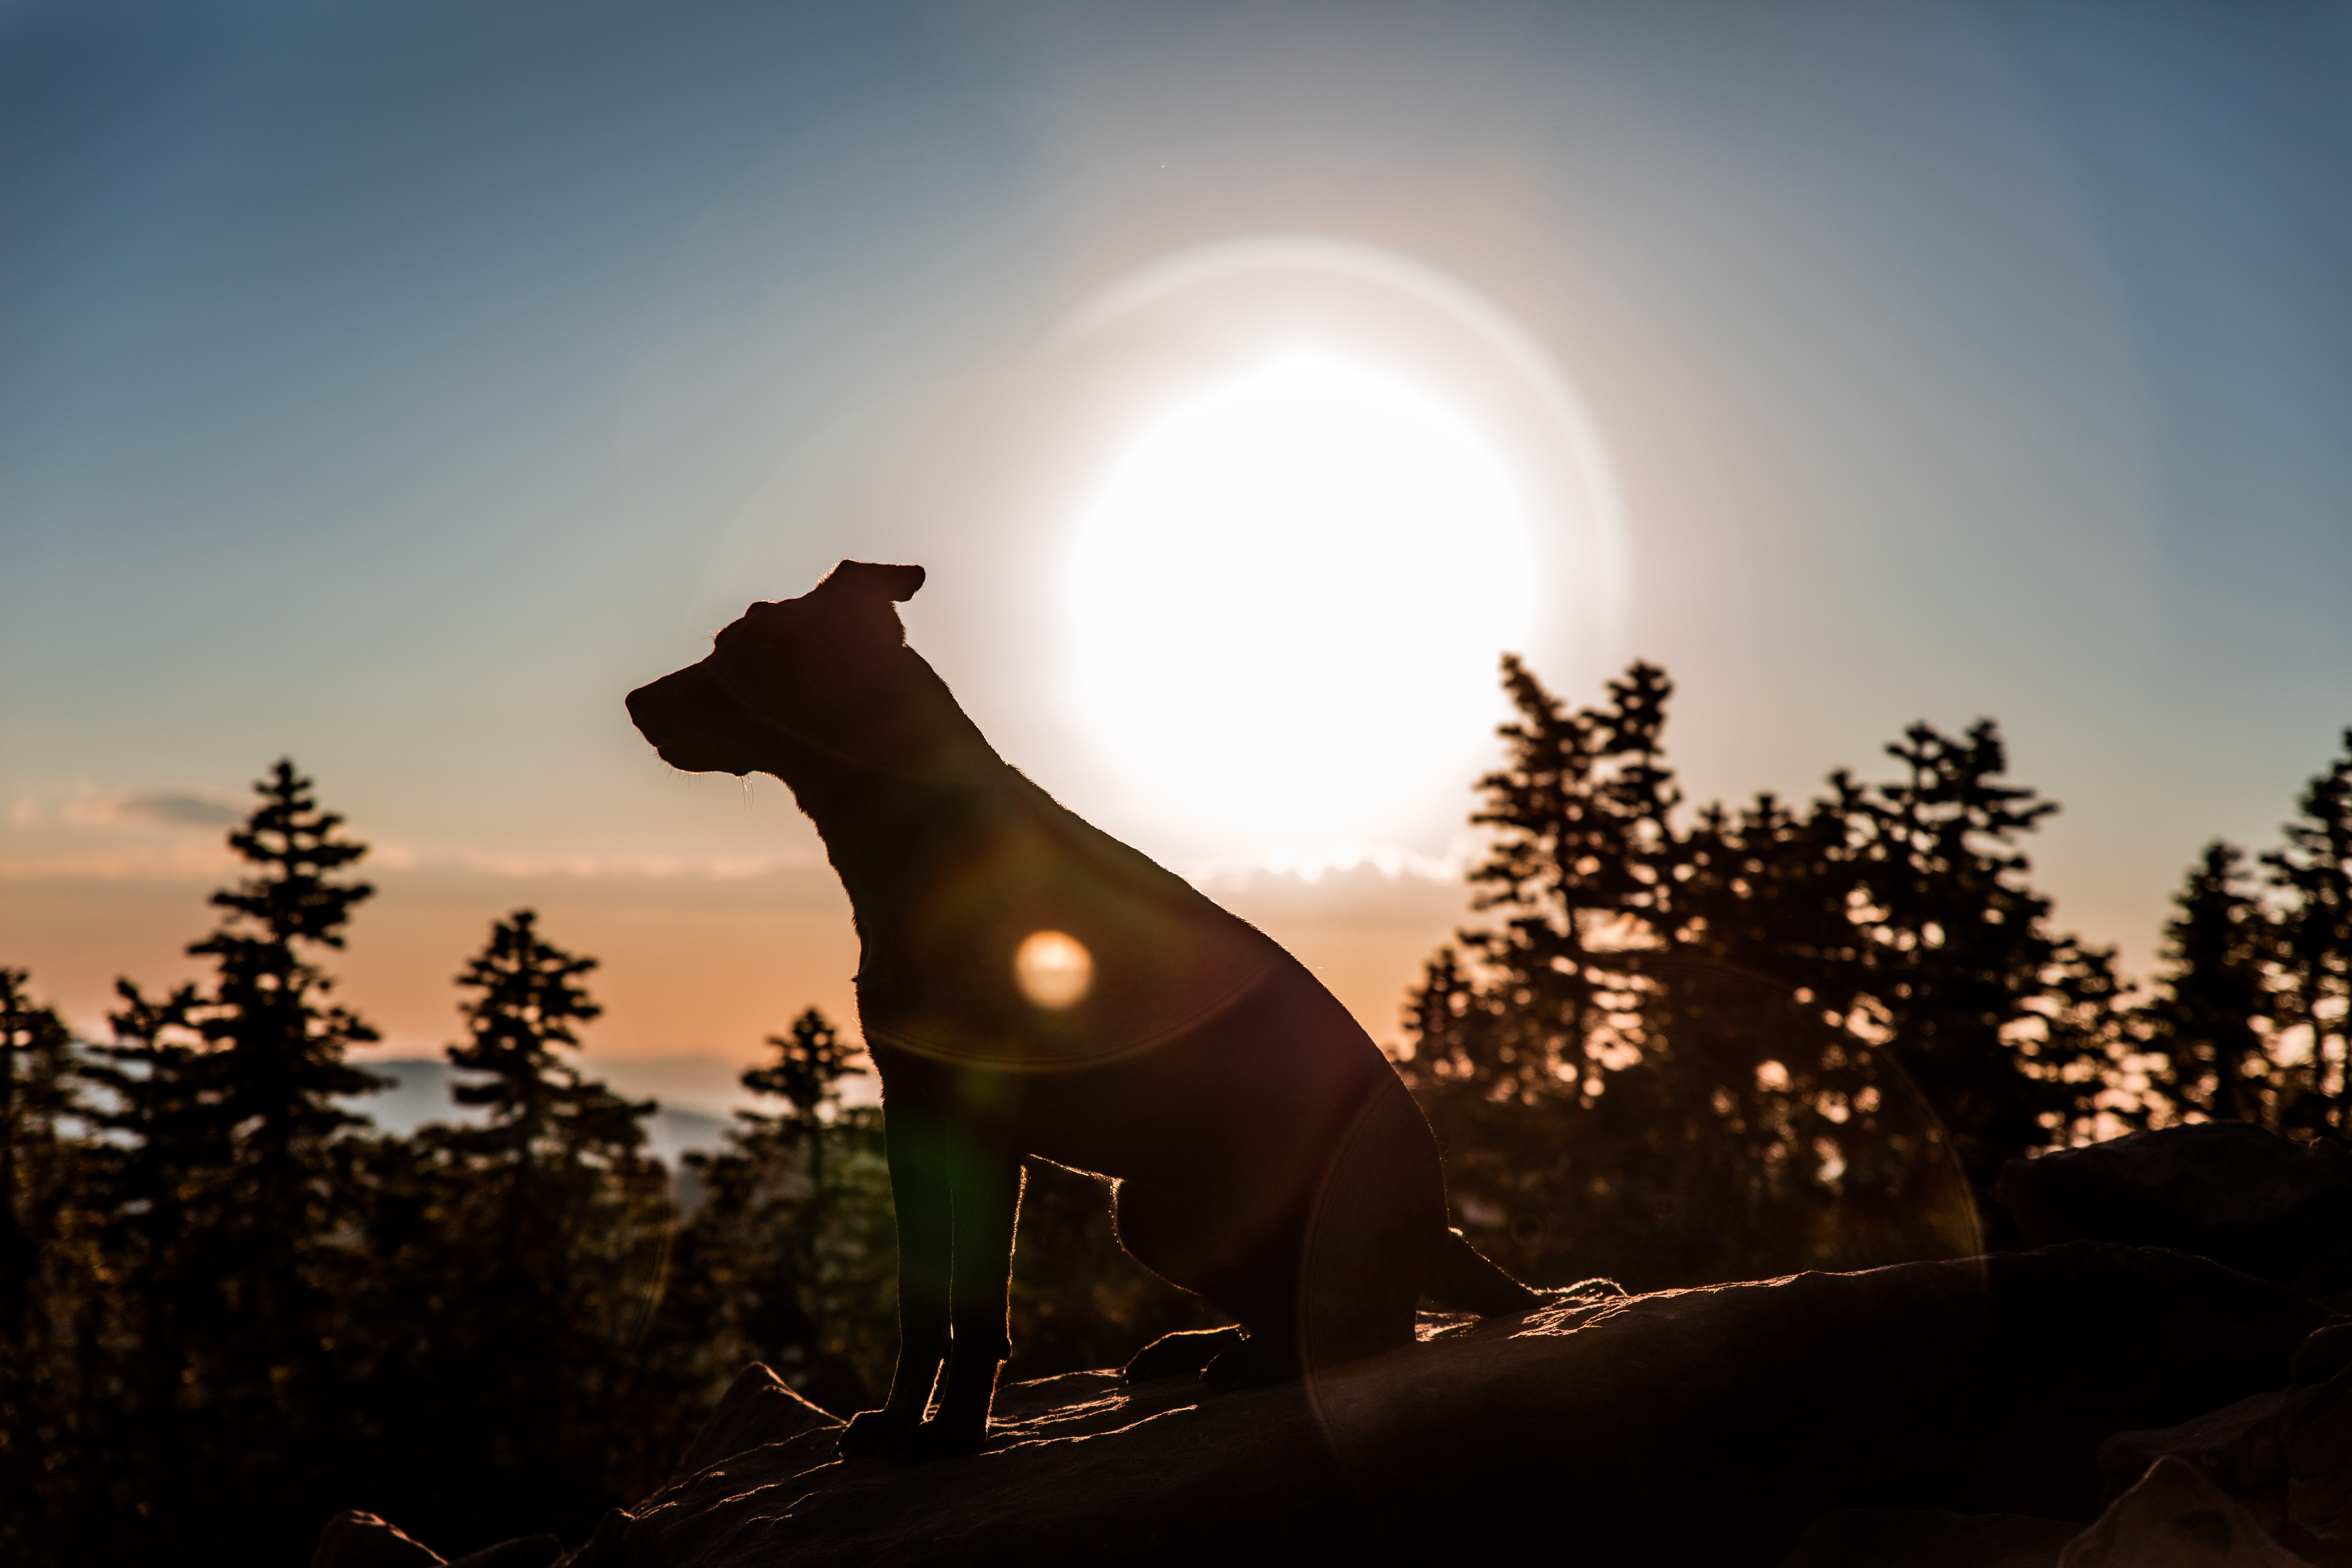 silhouette photo of dog on rock near trees